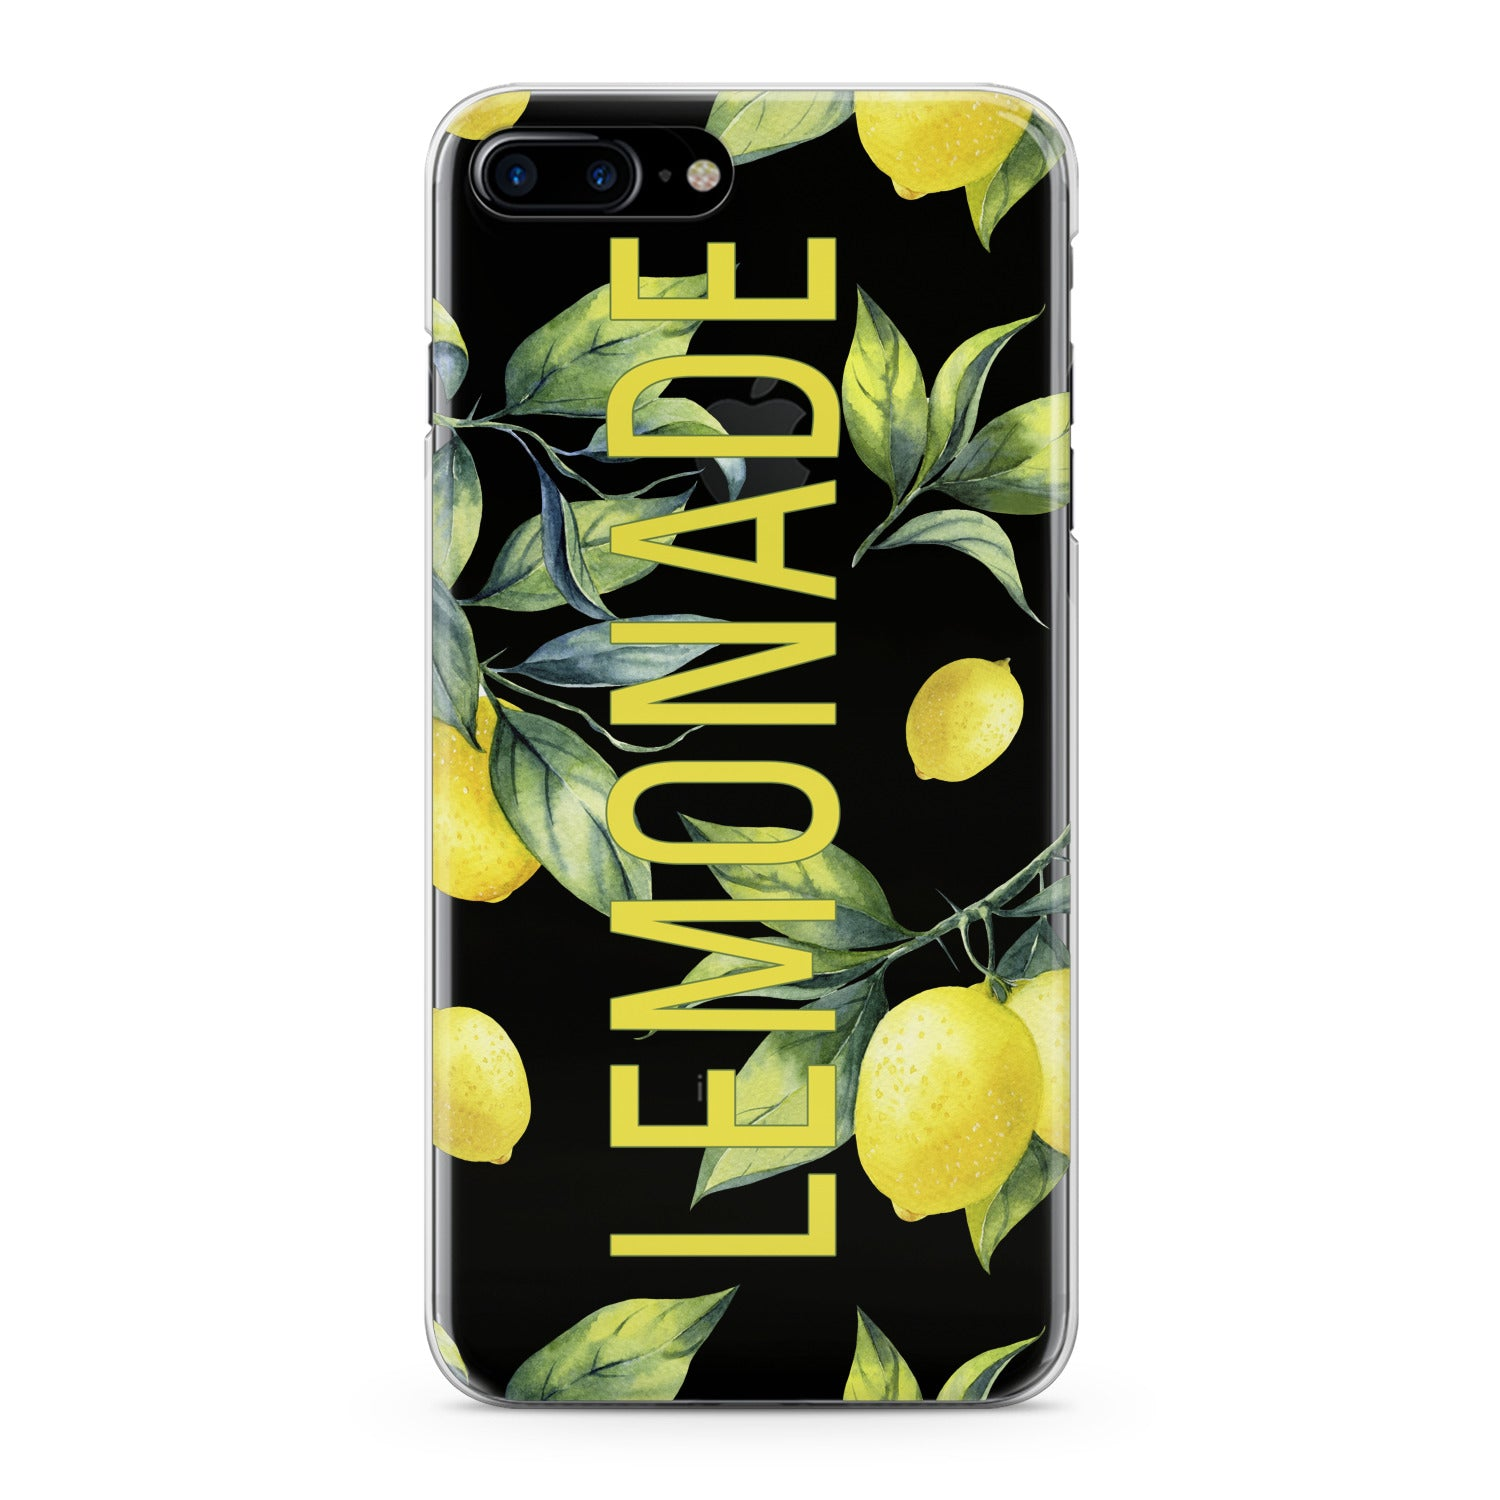 Lex Altern Lemon Fresh Phone Case for your iPhone & Android phone.